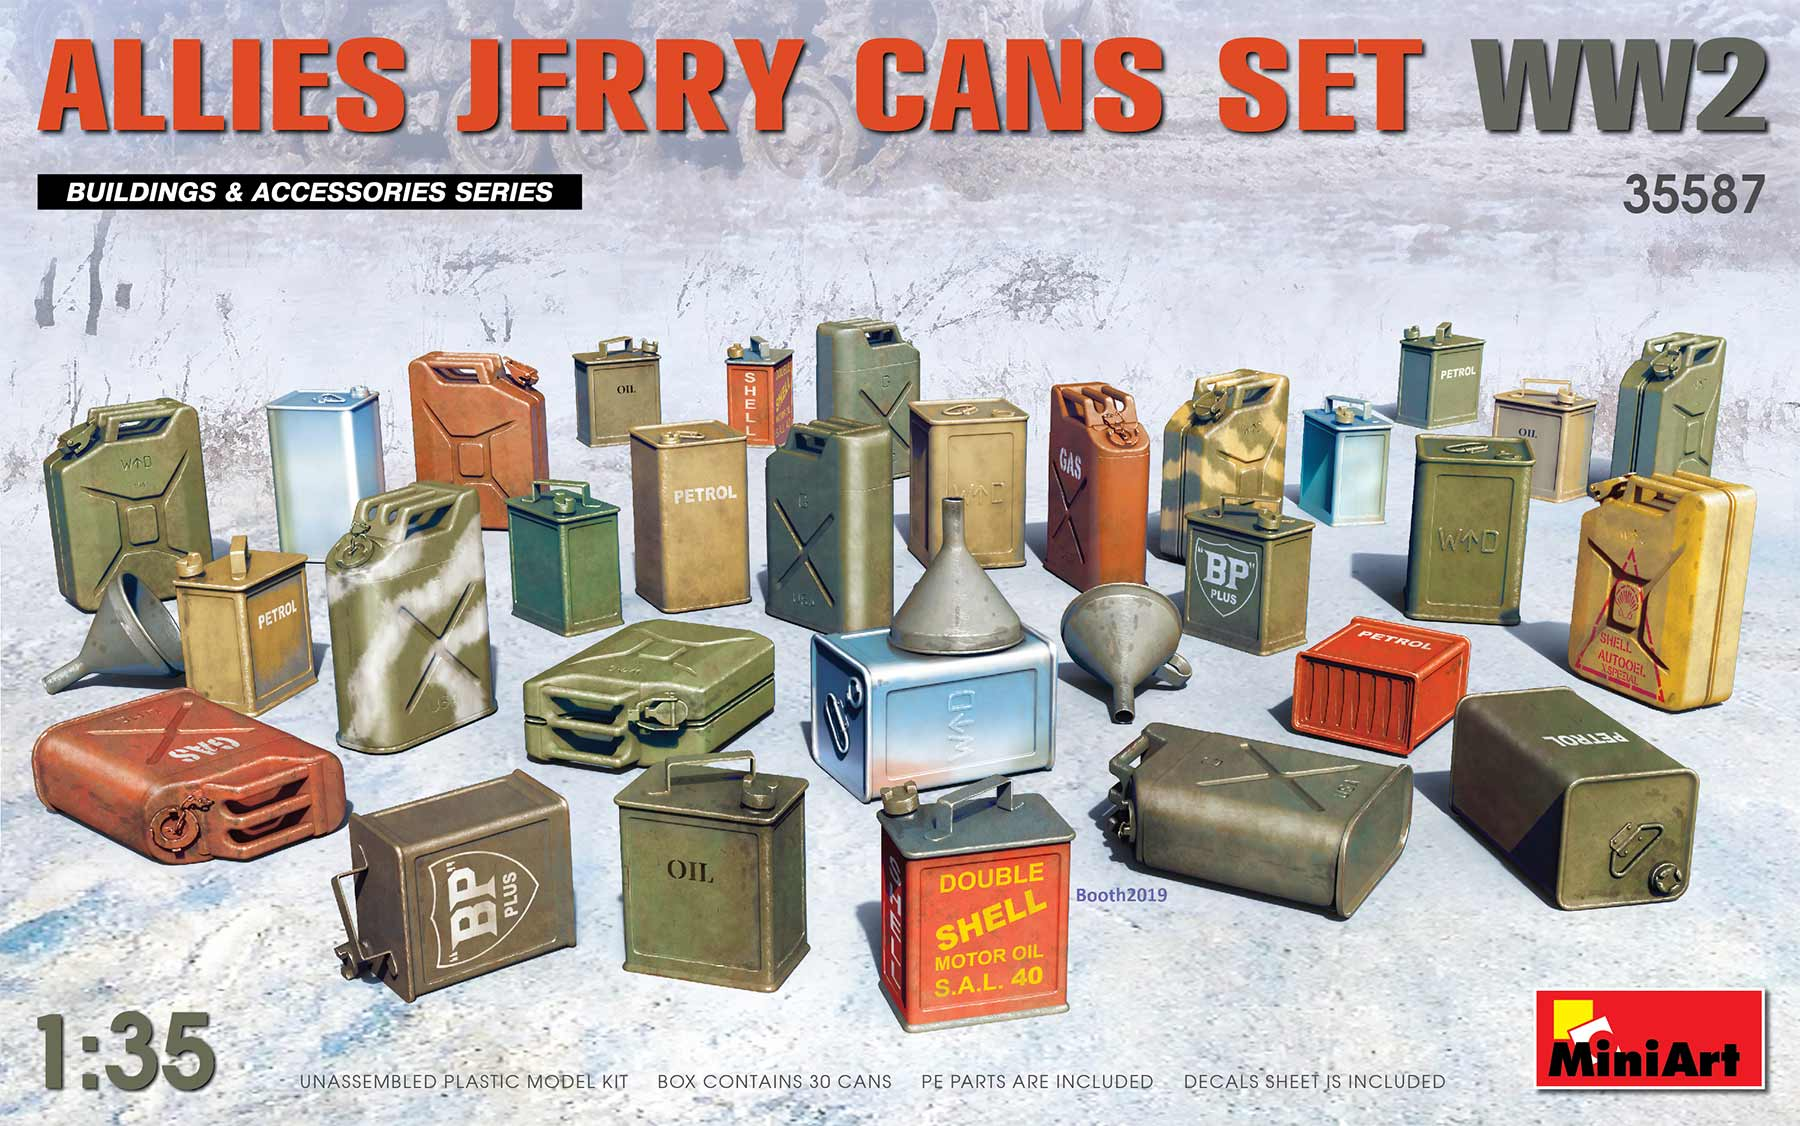 Allies Jerry Cans Set WWII - 1:35